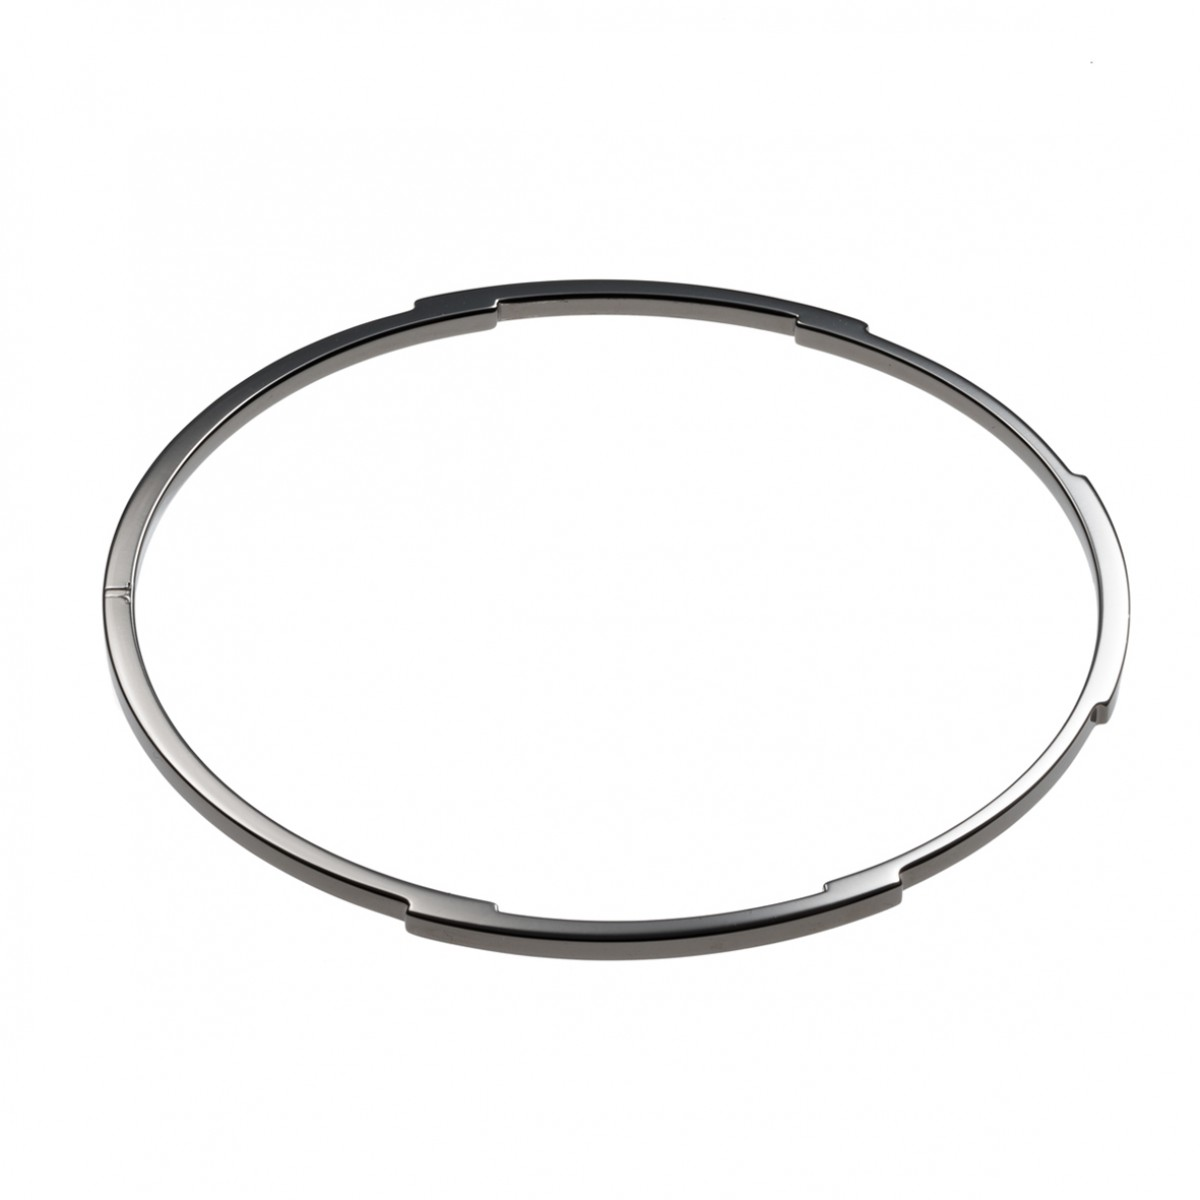 Jasmina Jovy Jewellery Decode! Bangle BRDC02 black rhodium